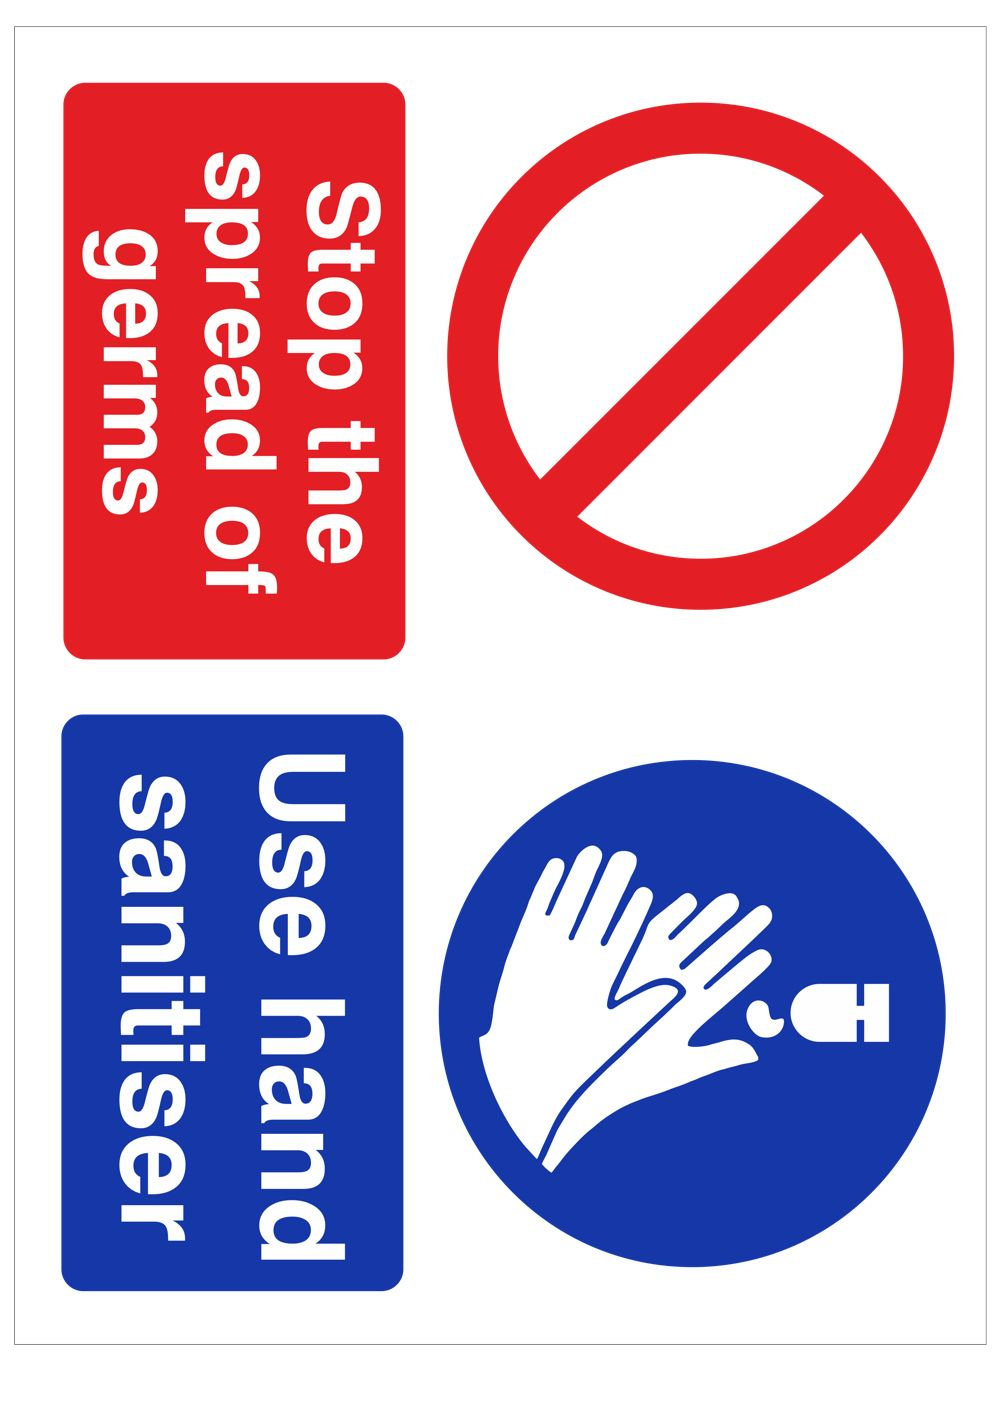 Free Social Distancing Sign Template - Stop Spread of Germs - Use Hand Sanitiser